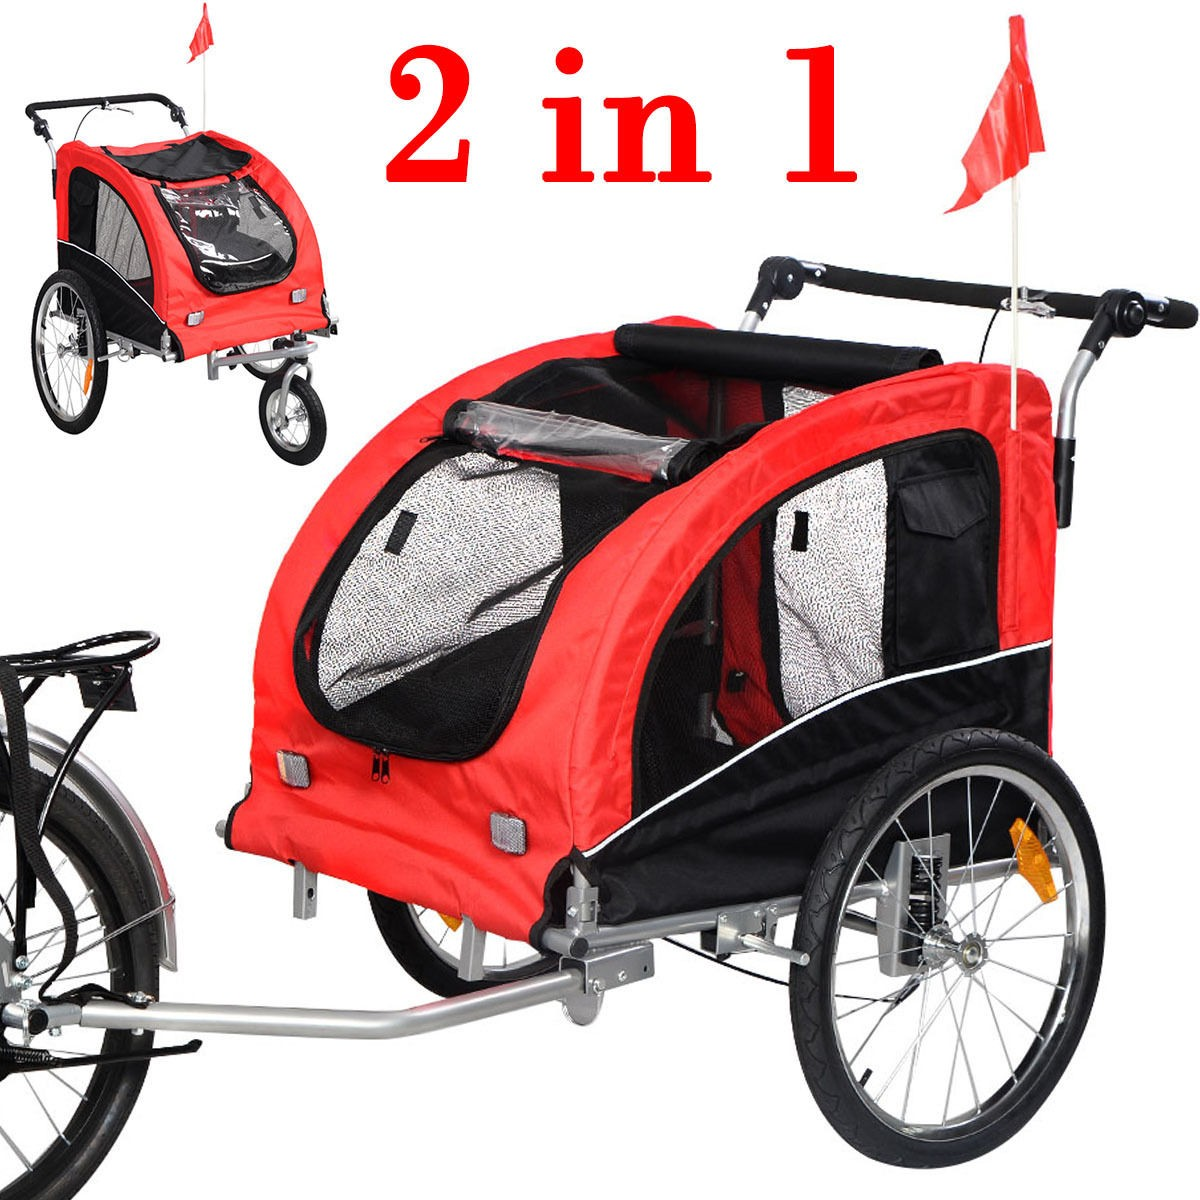 Our new 2 in 1 pet bike trailer/stroller is perfect for you to ride a bicycle with your lovely pets together. It features 2 in 1 weather-resistance canopy ...  sc 1 st  eBay & 2 IN 1 Pet Dog Puppy Bike Trailer Bicycle Trailer Stroller Jogging ...